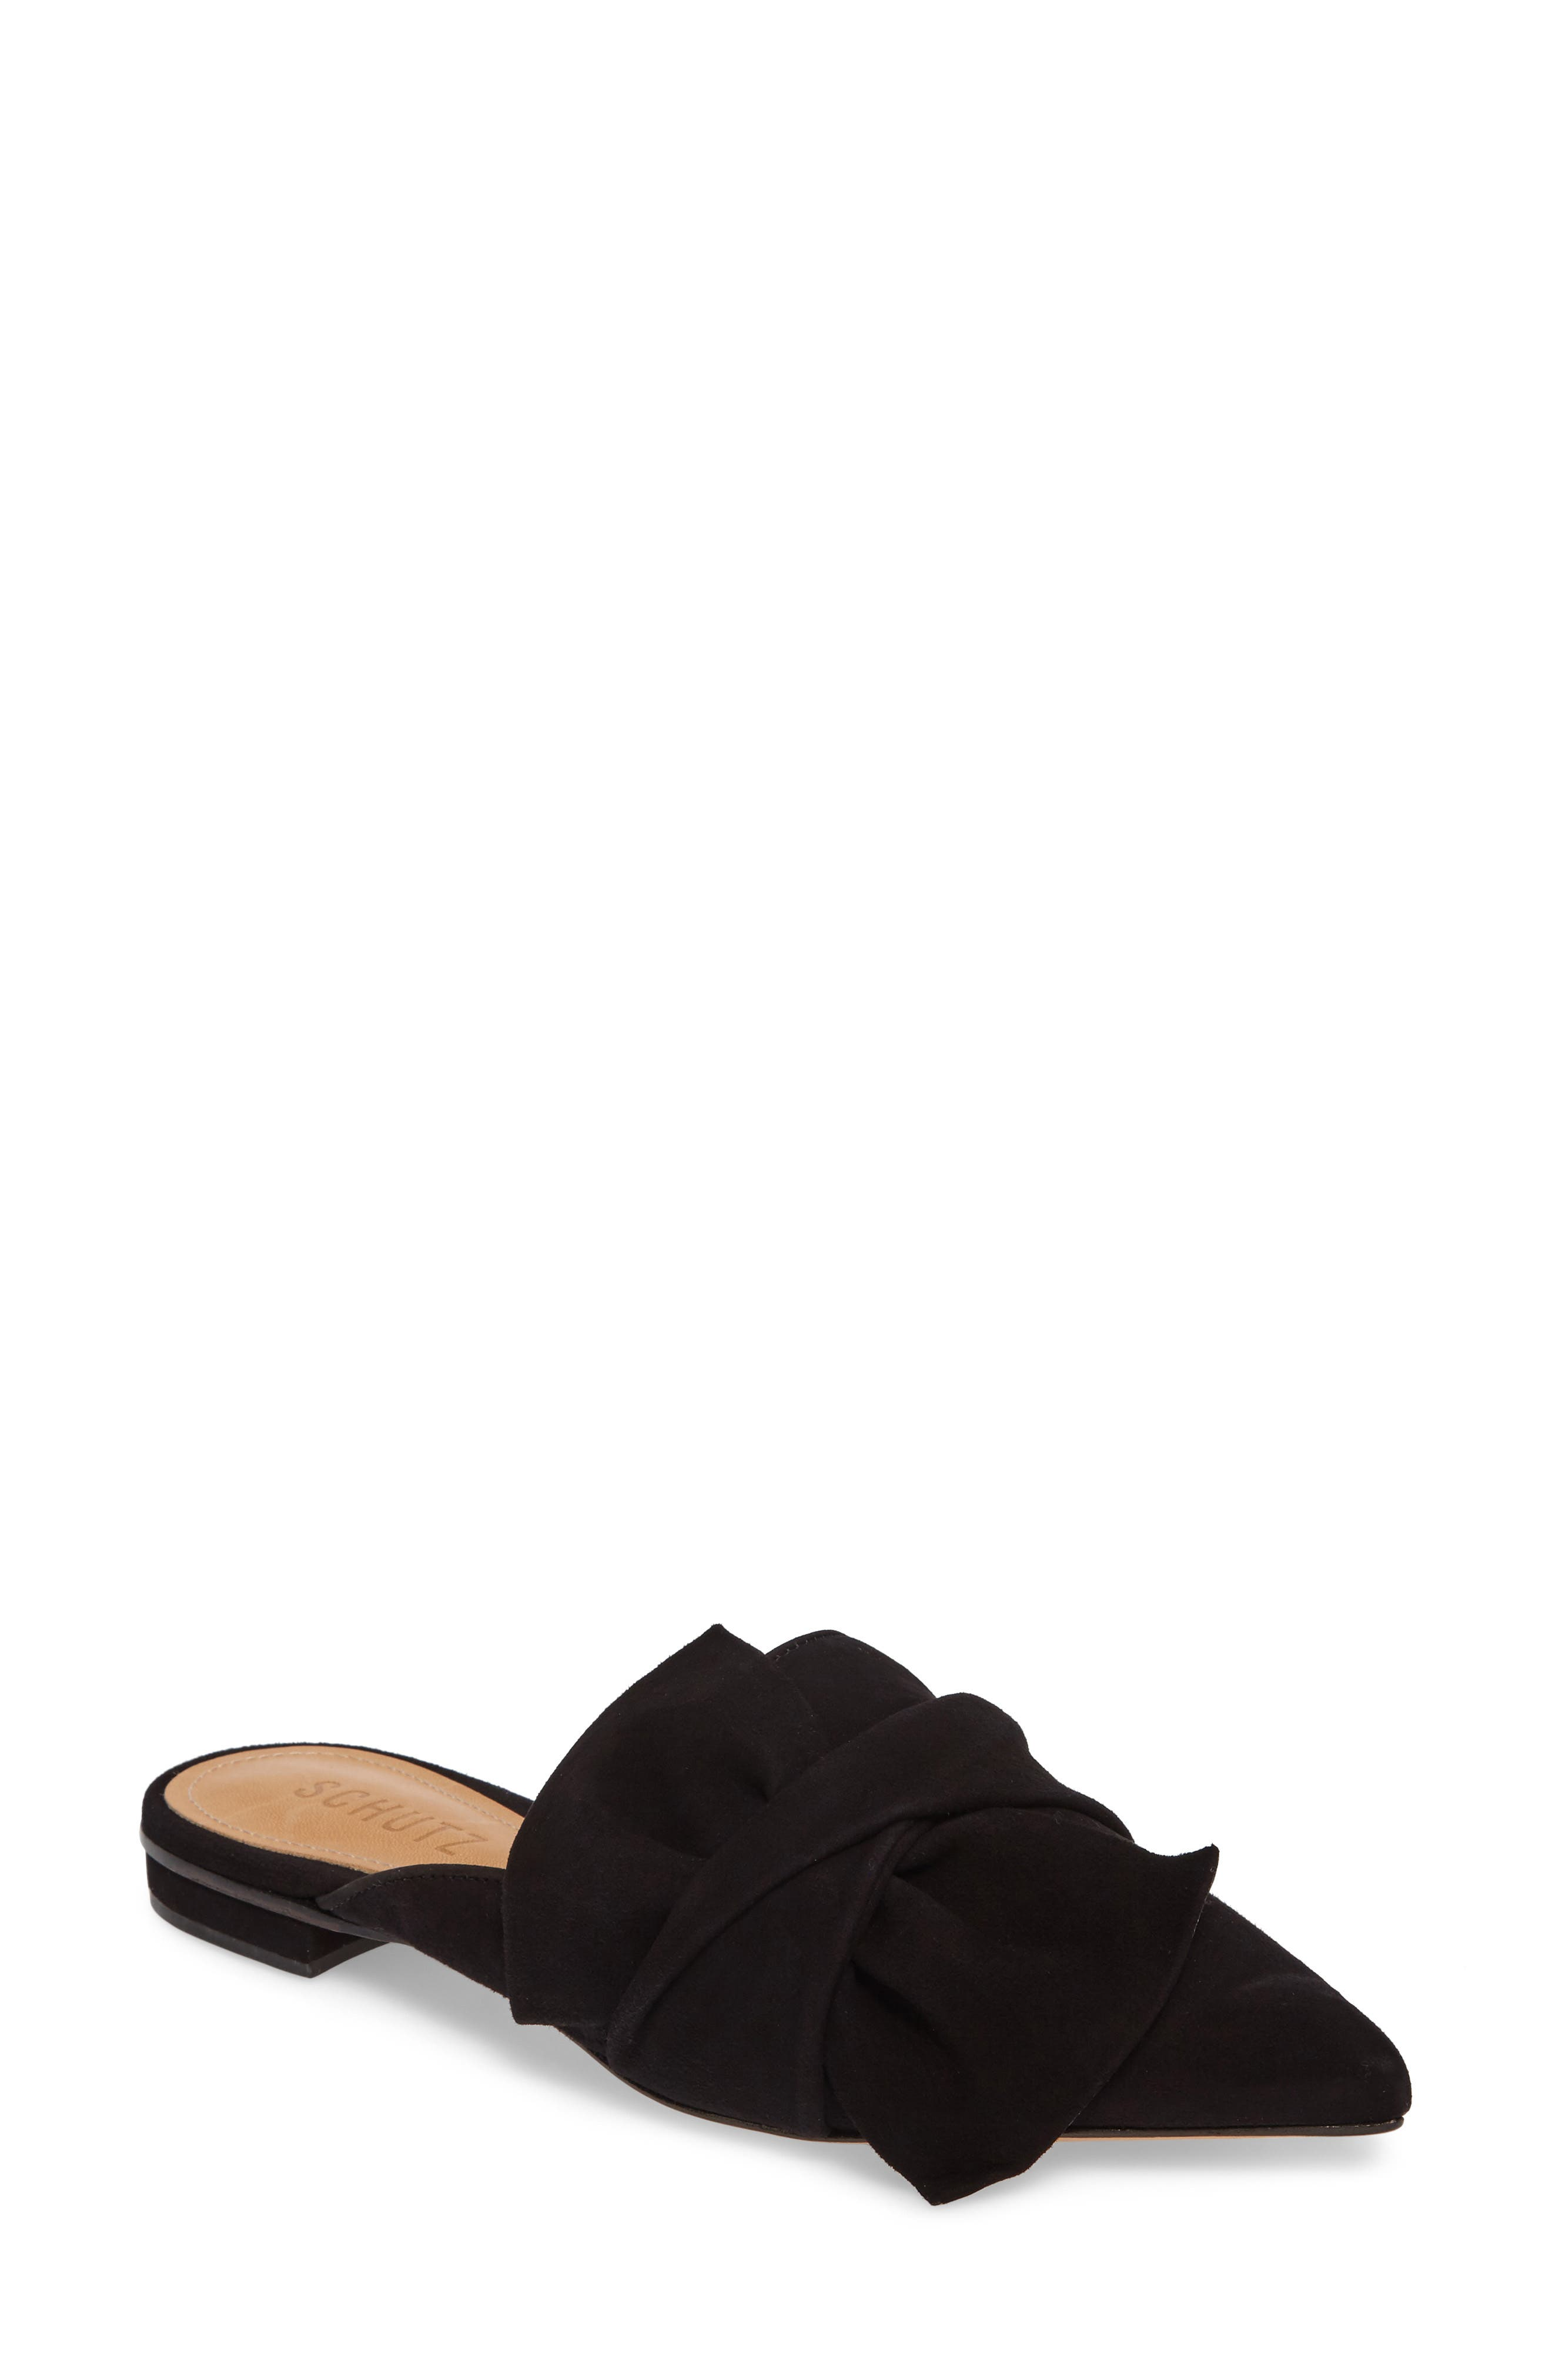 SCHUTZ DAna Knotted Loafer Mule